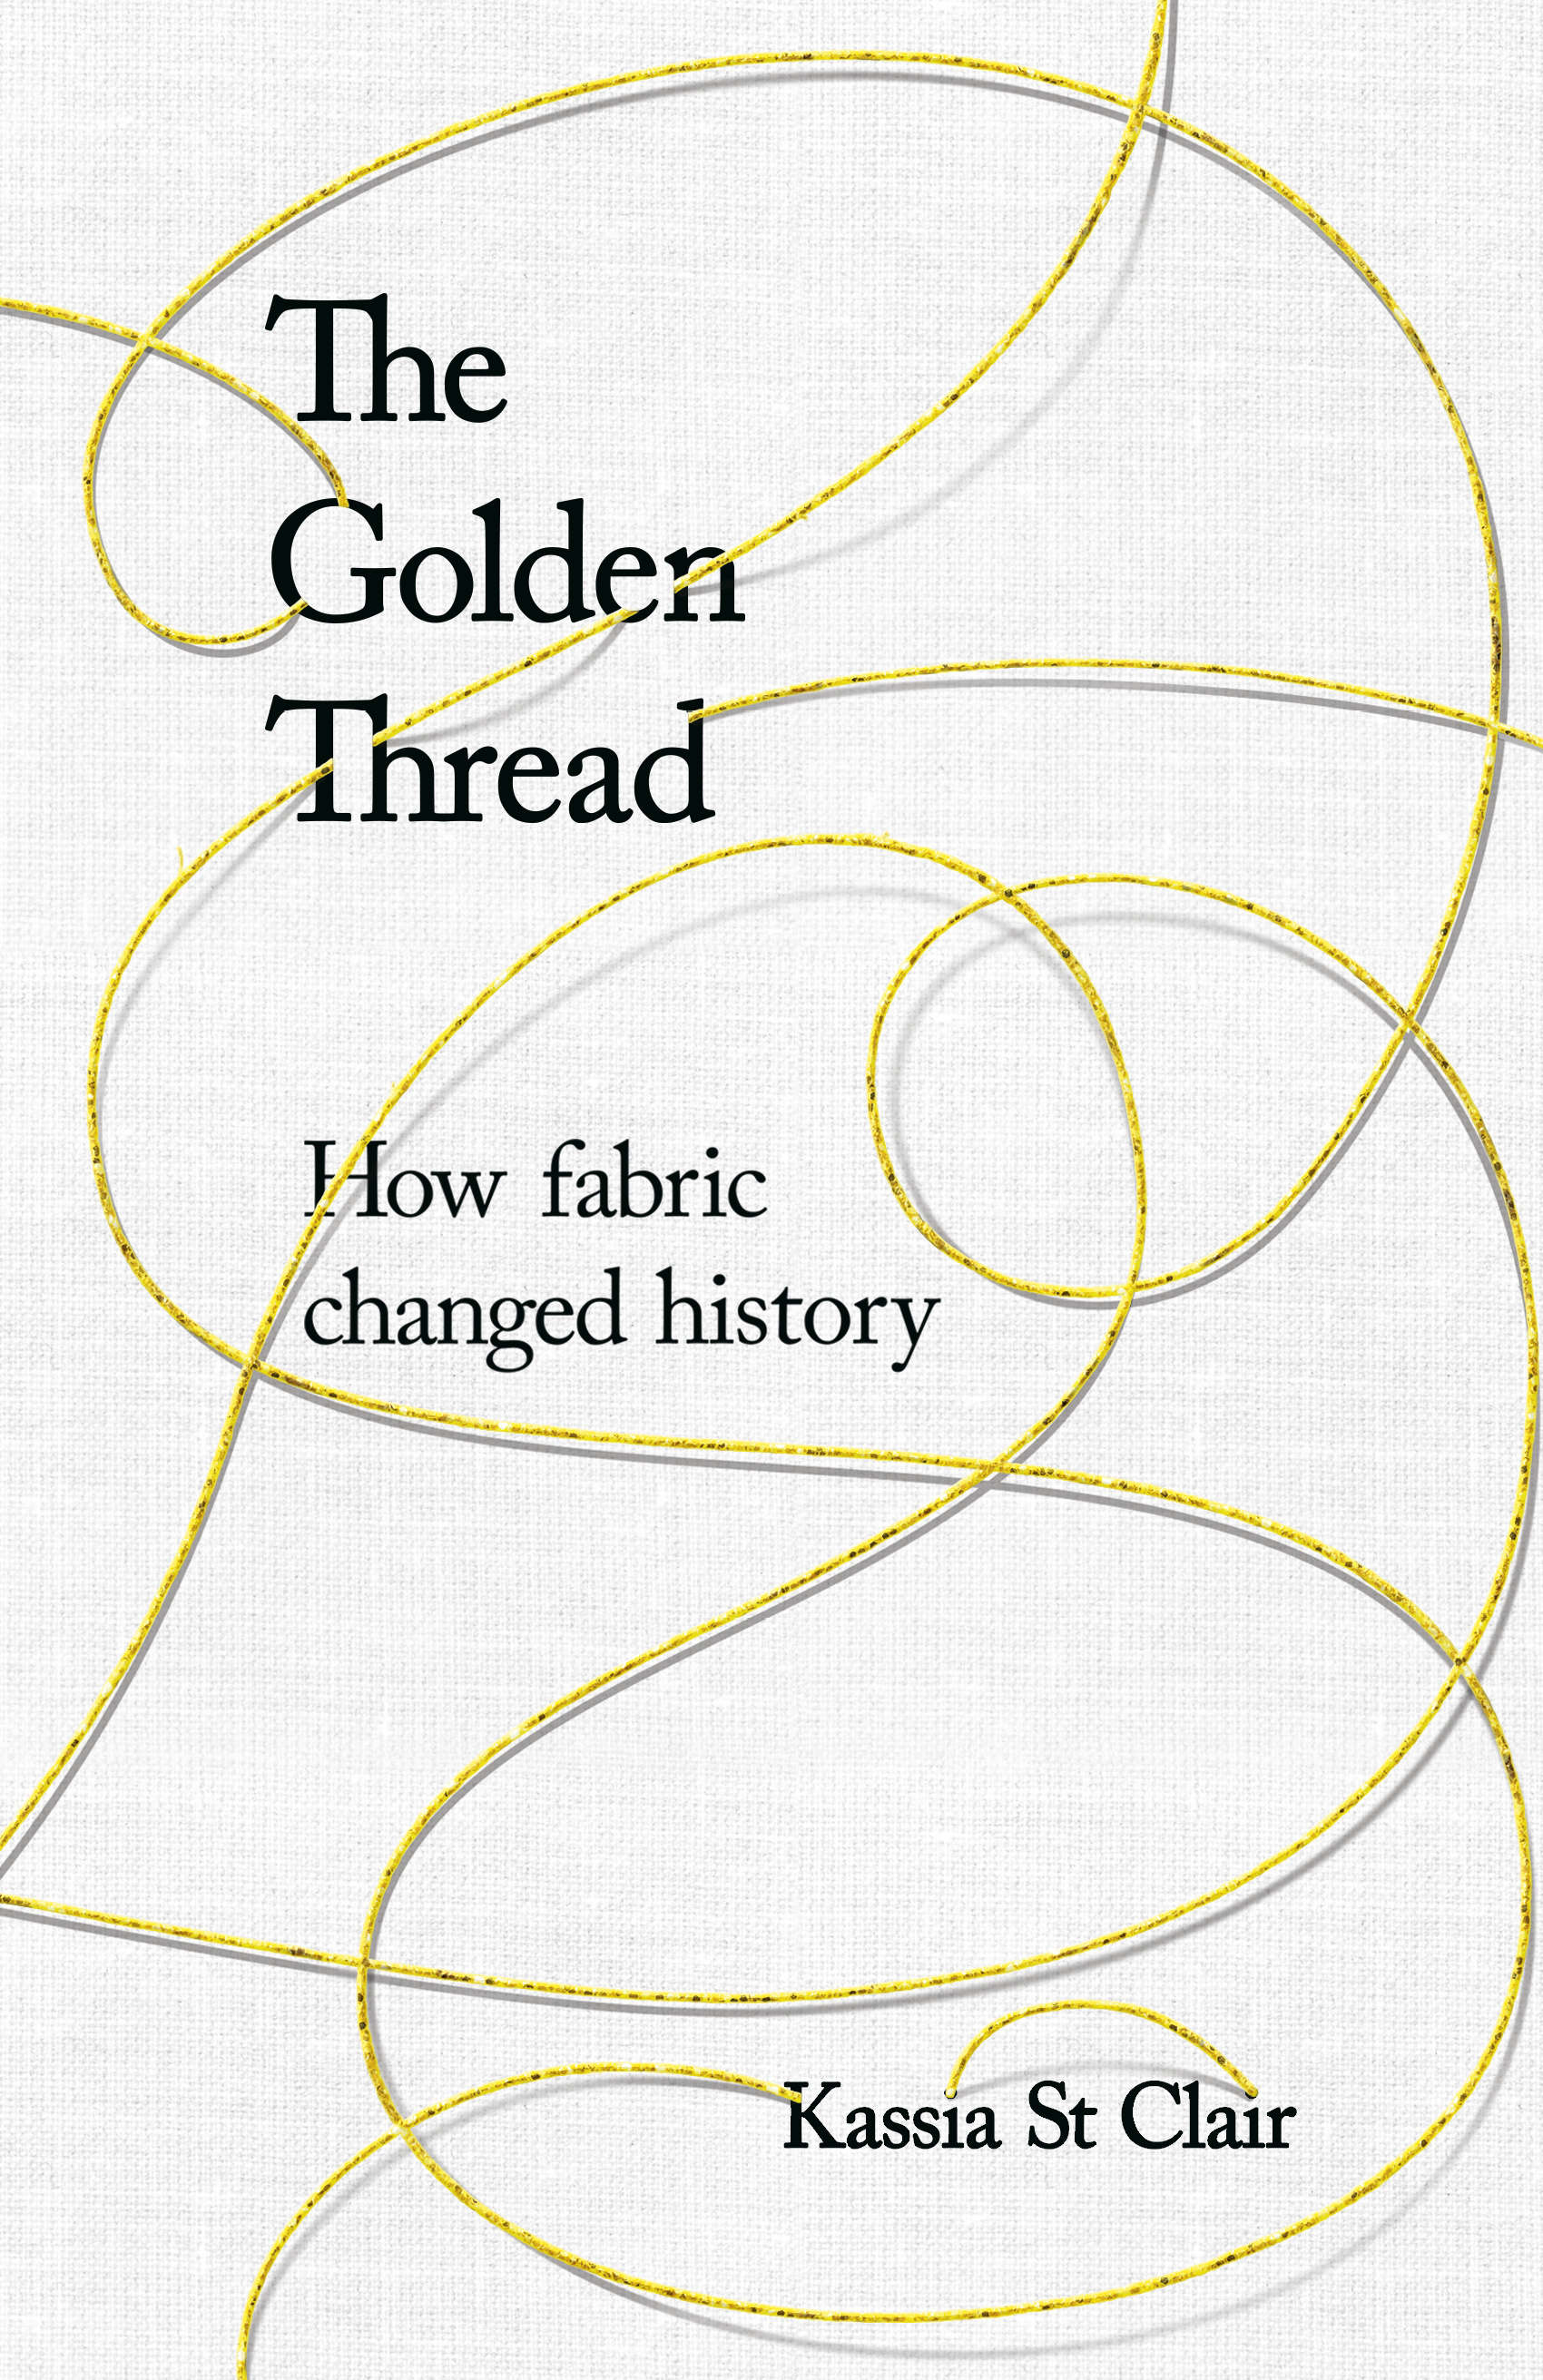 Image result for The Golden Thread: How Fabric Changed History by Kassia St Clair